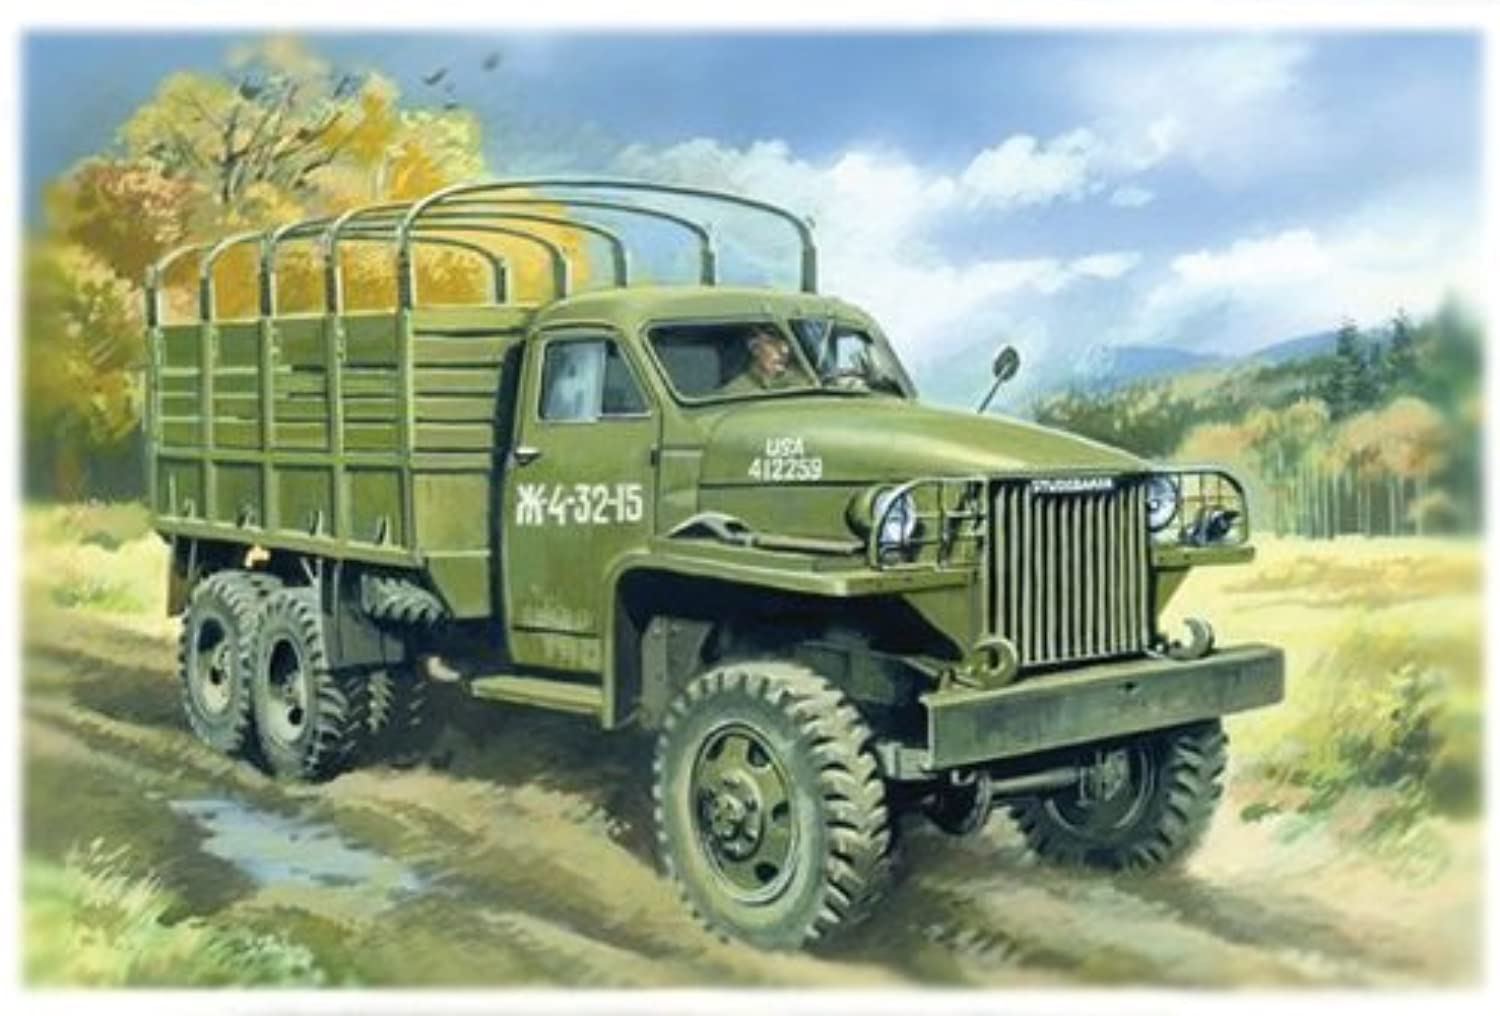 ICM 1 35 Studebaker US-6 WWII Army Truck   35511 by ICM